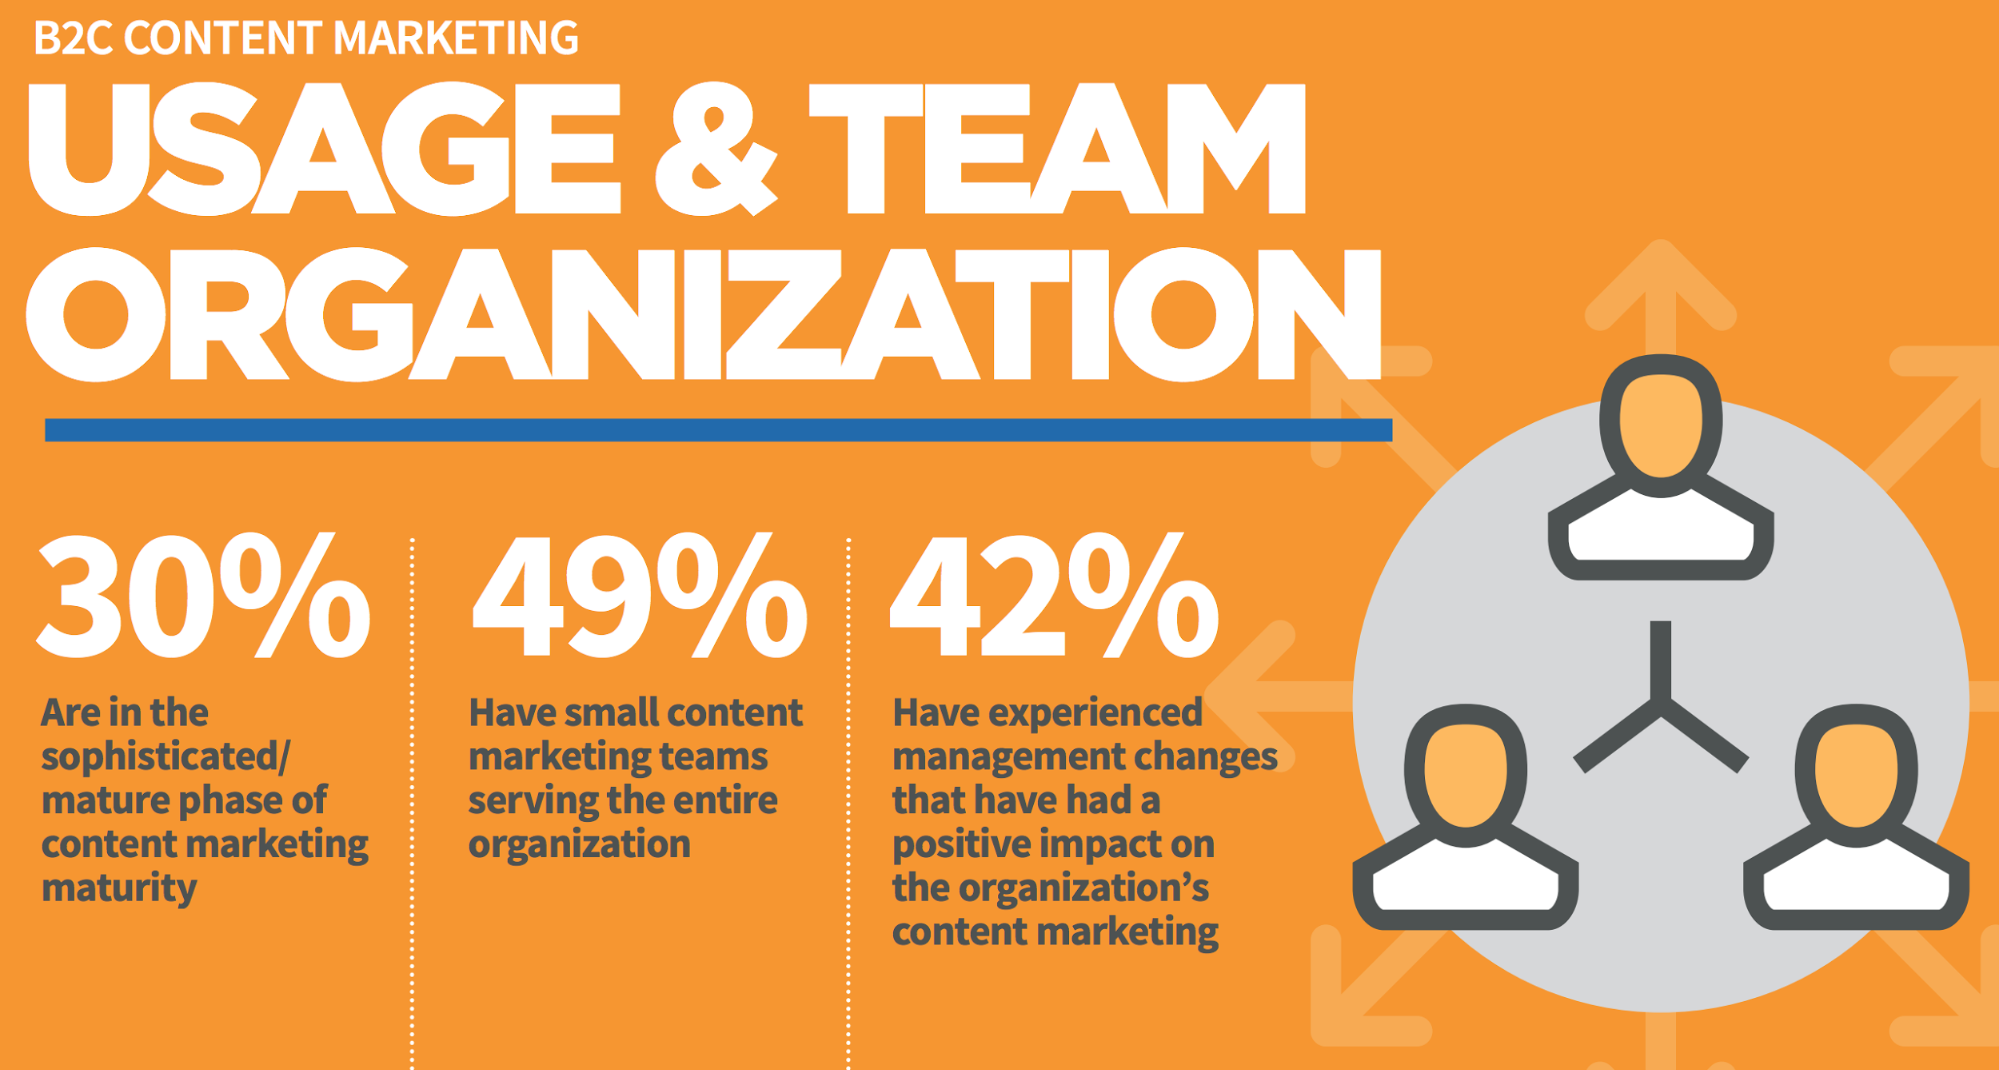 B2B Content Marketing Usage & Team Organization